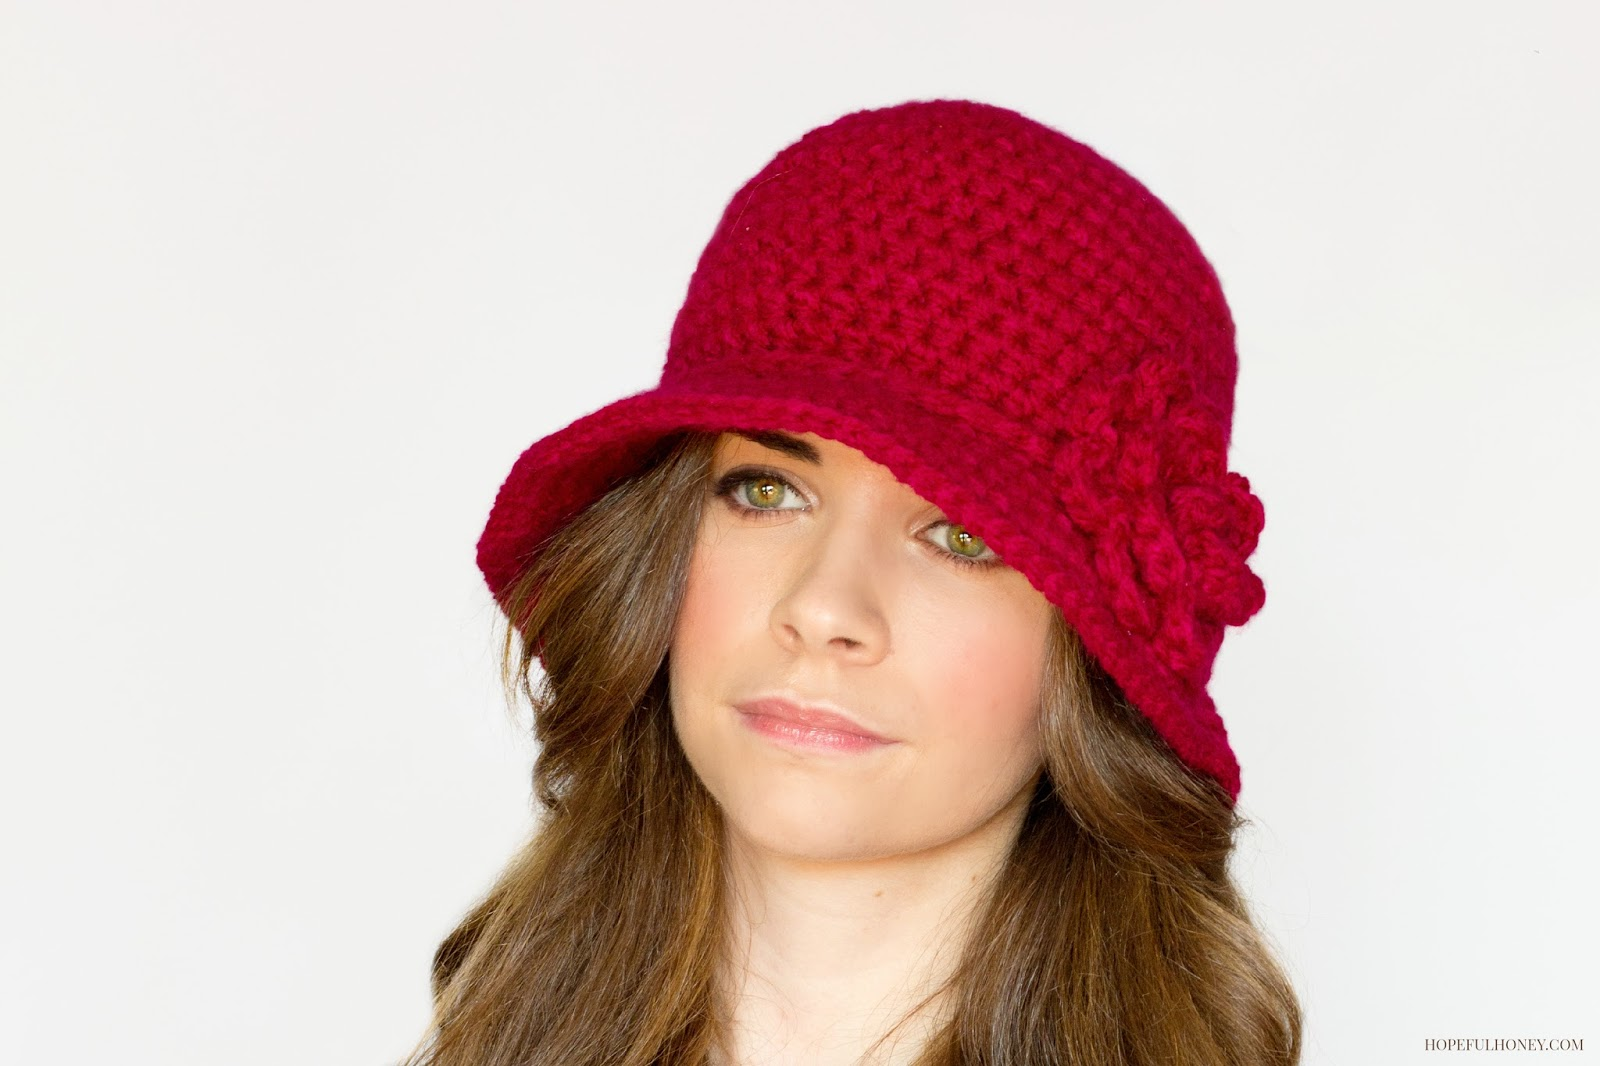 Crochet Patterns Hats : ... Honey Craft, Crochet, Create: 1920s Cloche Hat Crochet Pattern